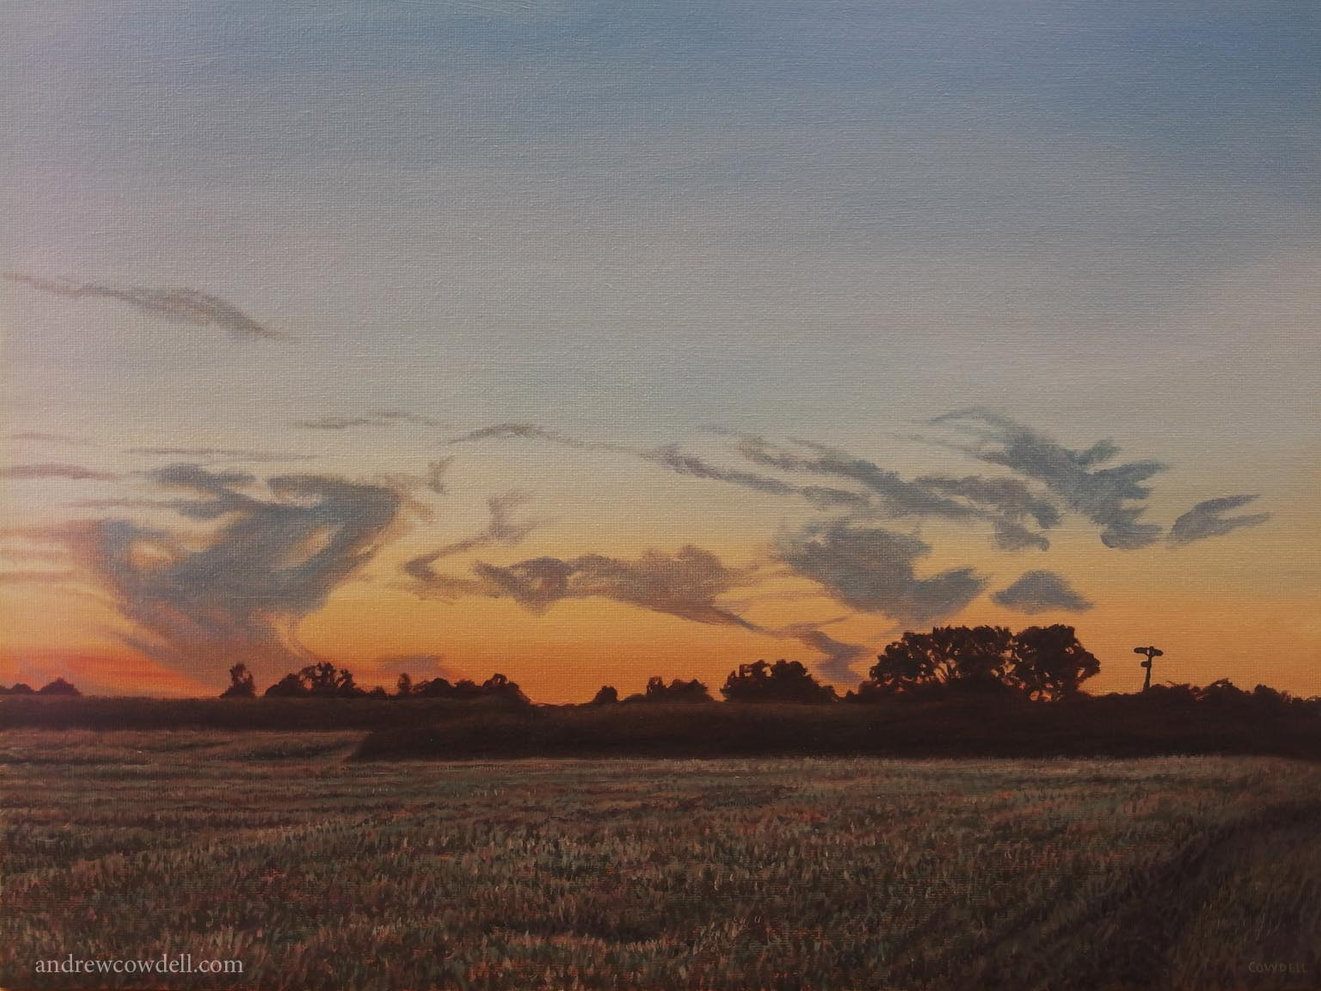 Dark Paintings by Andrew Cowdell. Landscape after sunset over fields at Hermitage, West Berkshire.